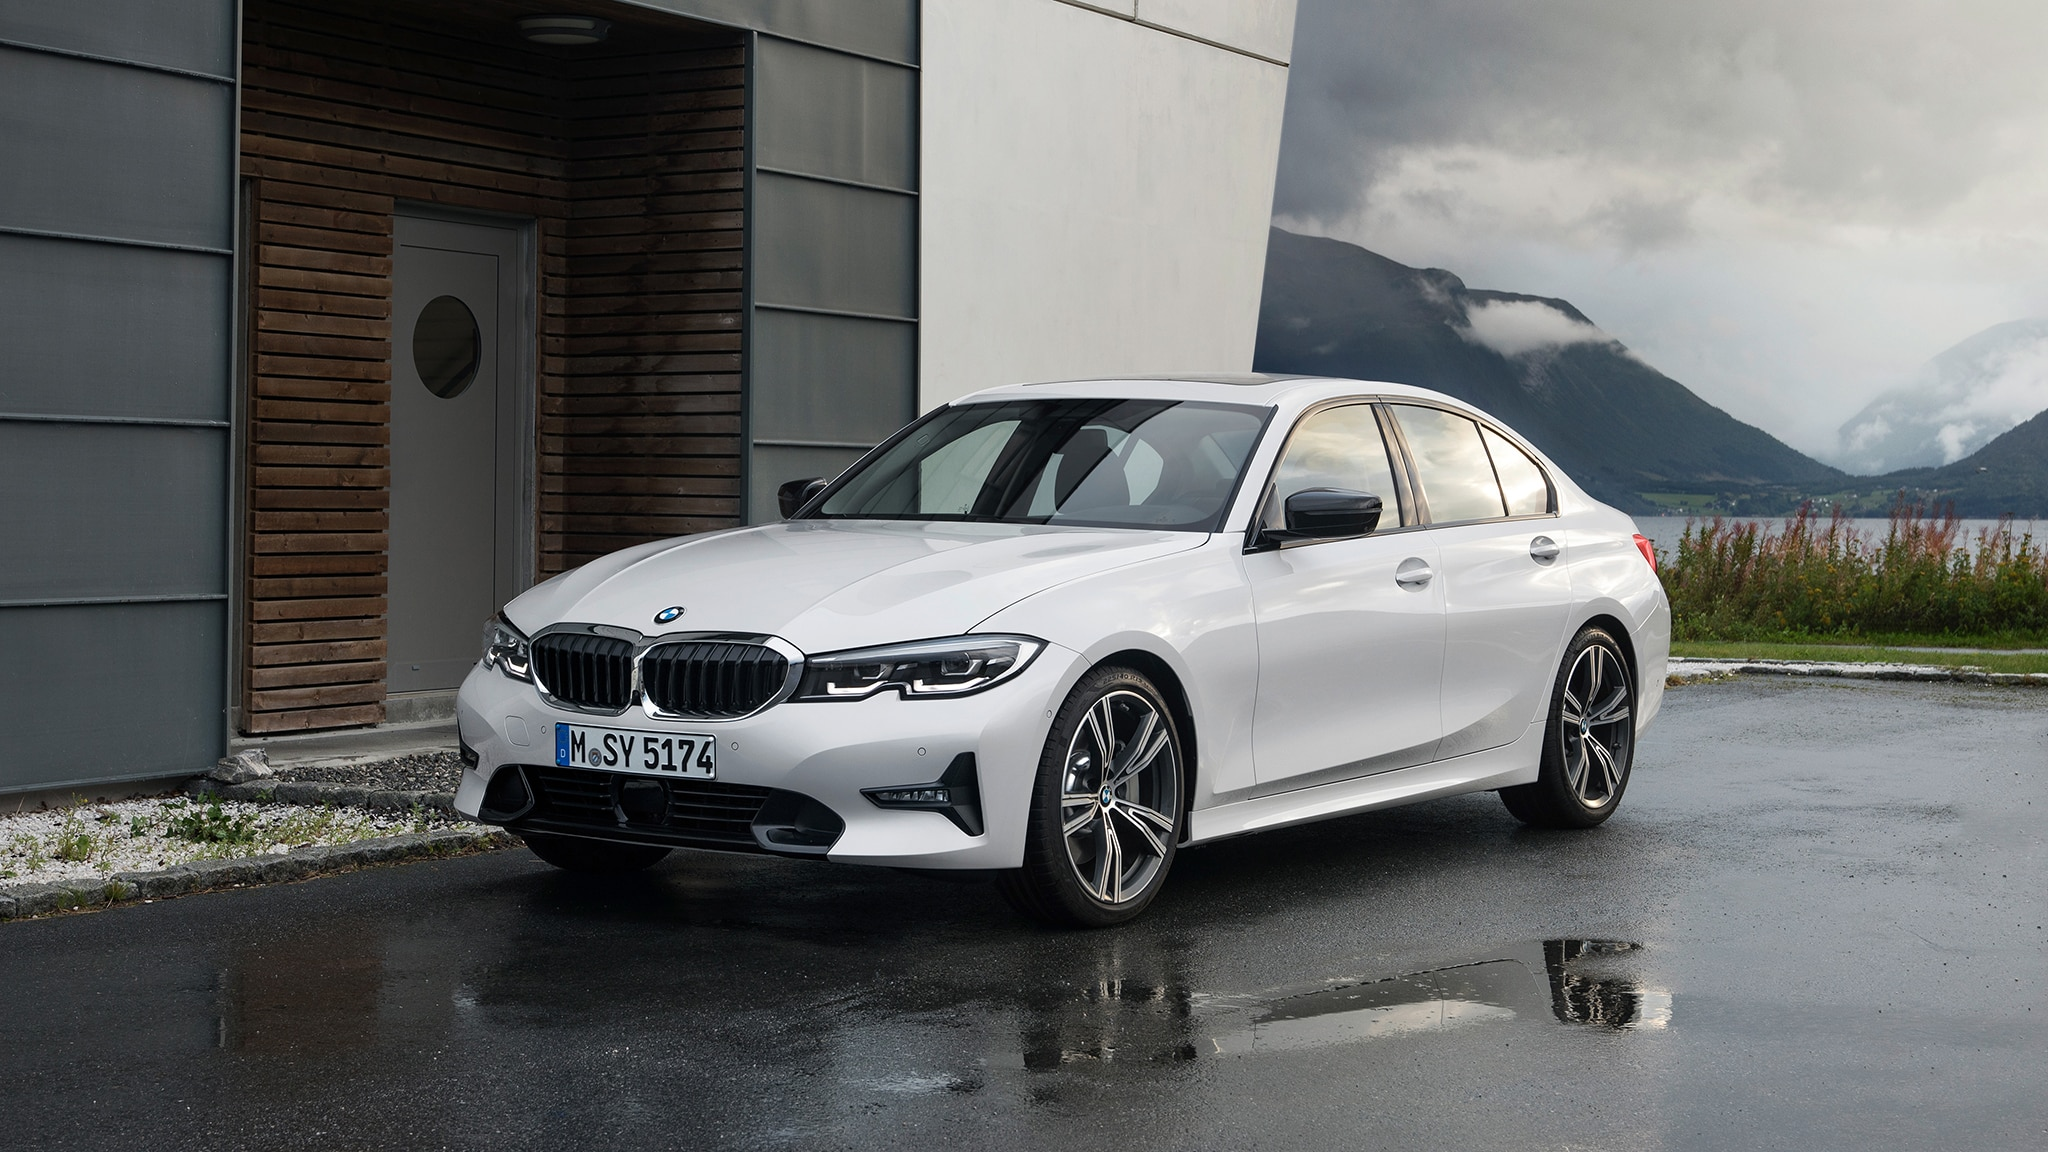 2019 Bmw 3 Series Design Analysis Exterior Interior Details